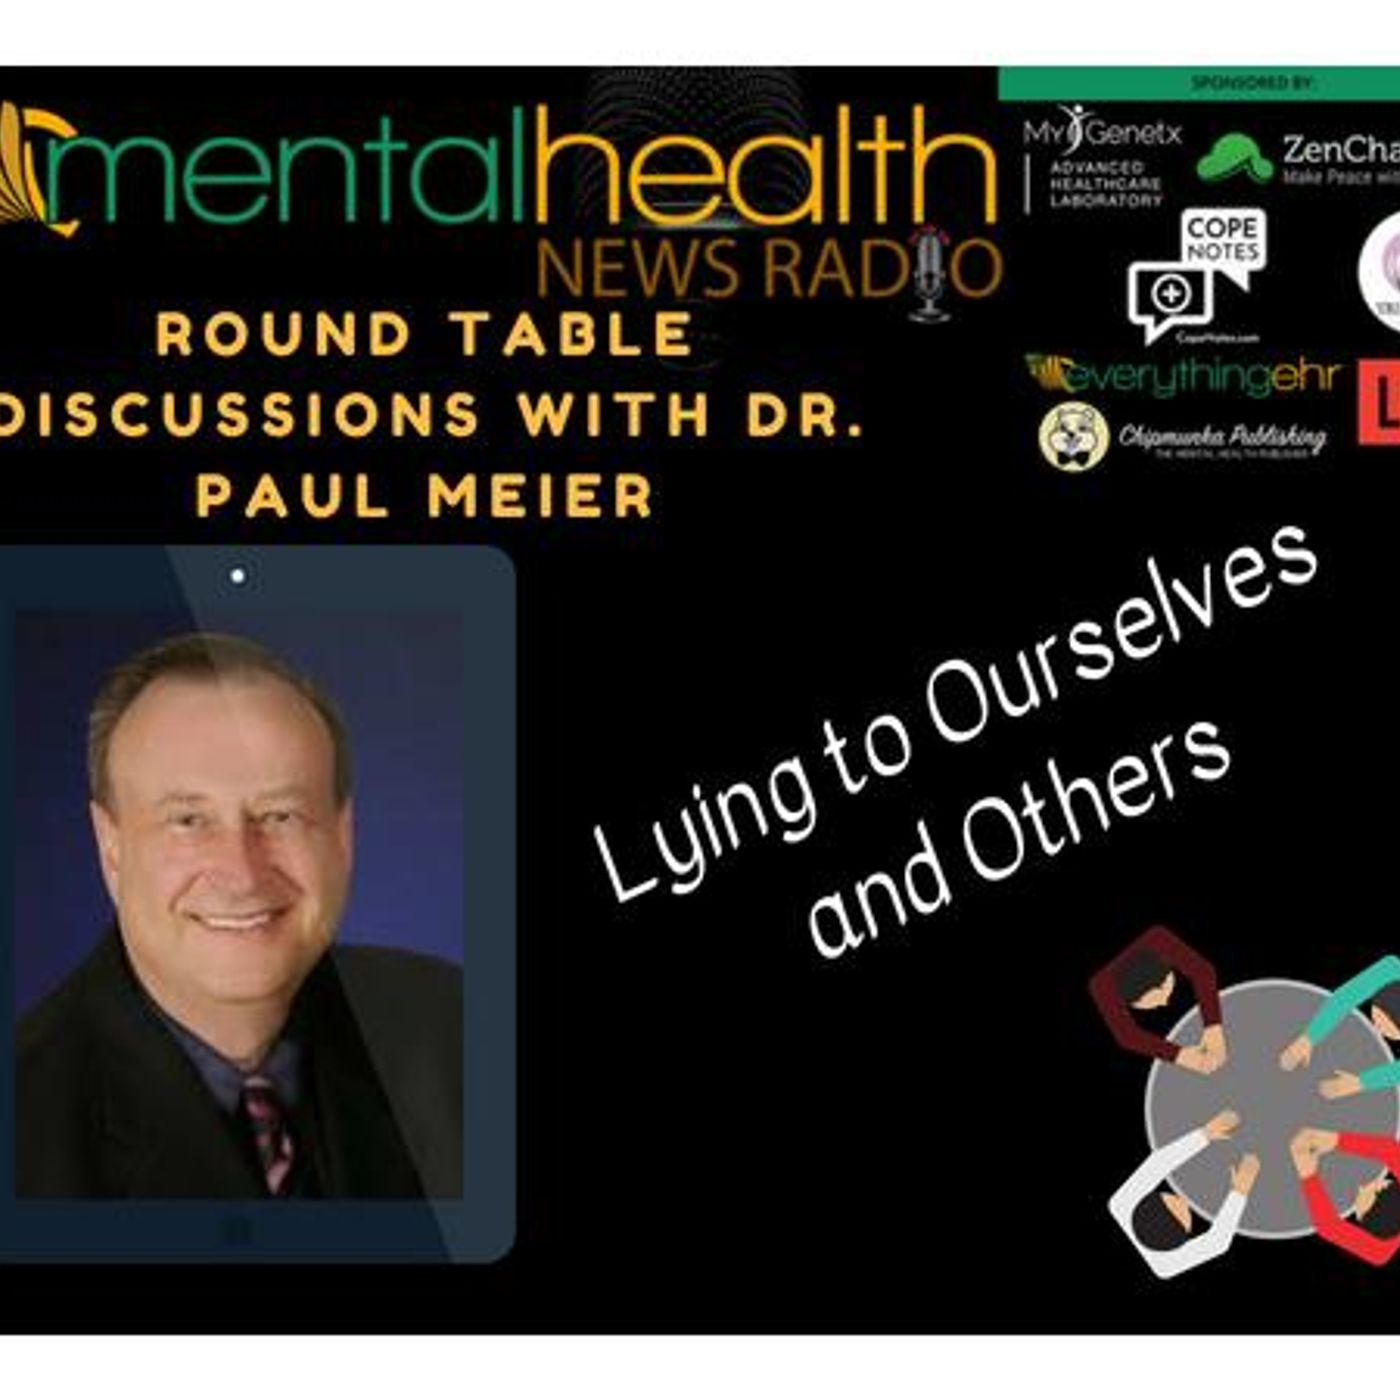 Mental Health News Radio - Round Table Discussions with Dr. Paul Meier: Lying to Ourselves & Others